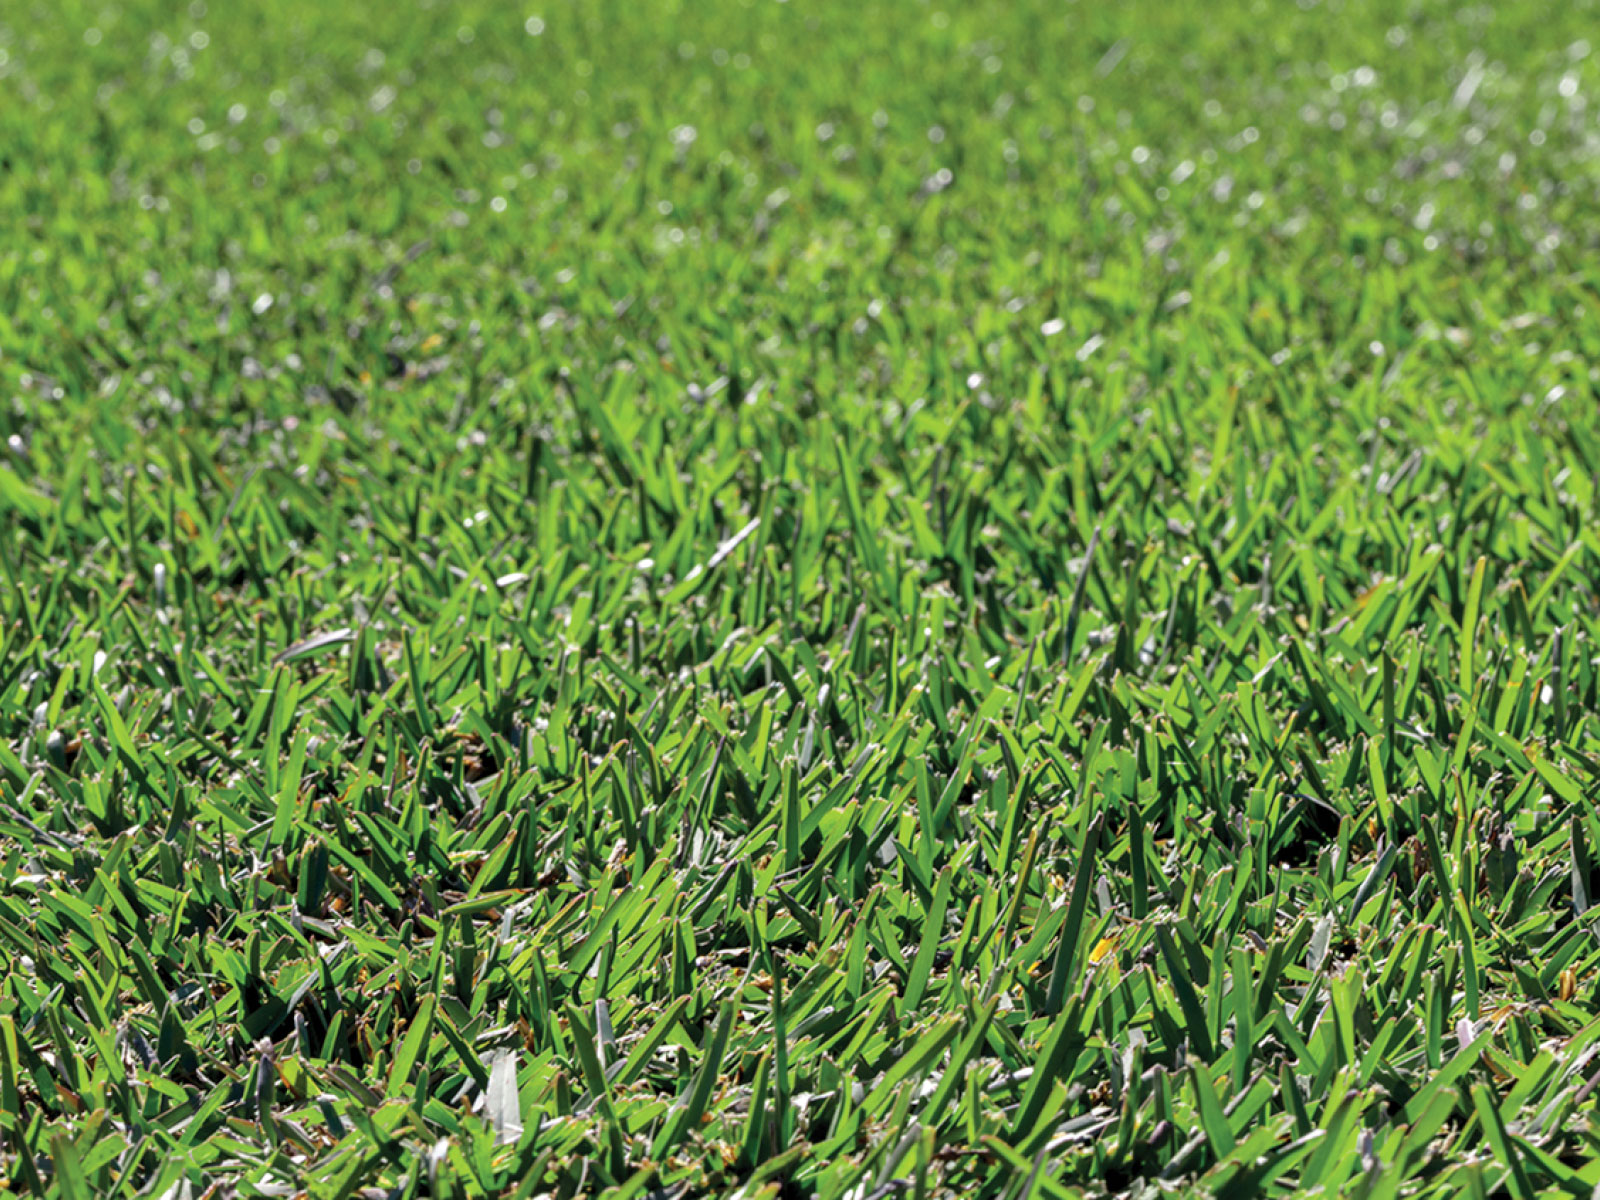 Lawn Mowing Heights for Buffalo Grass